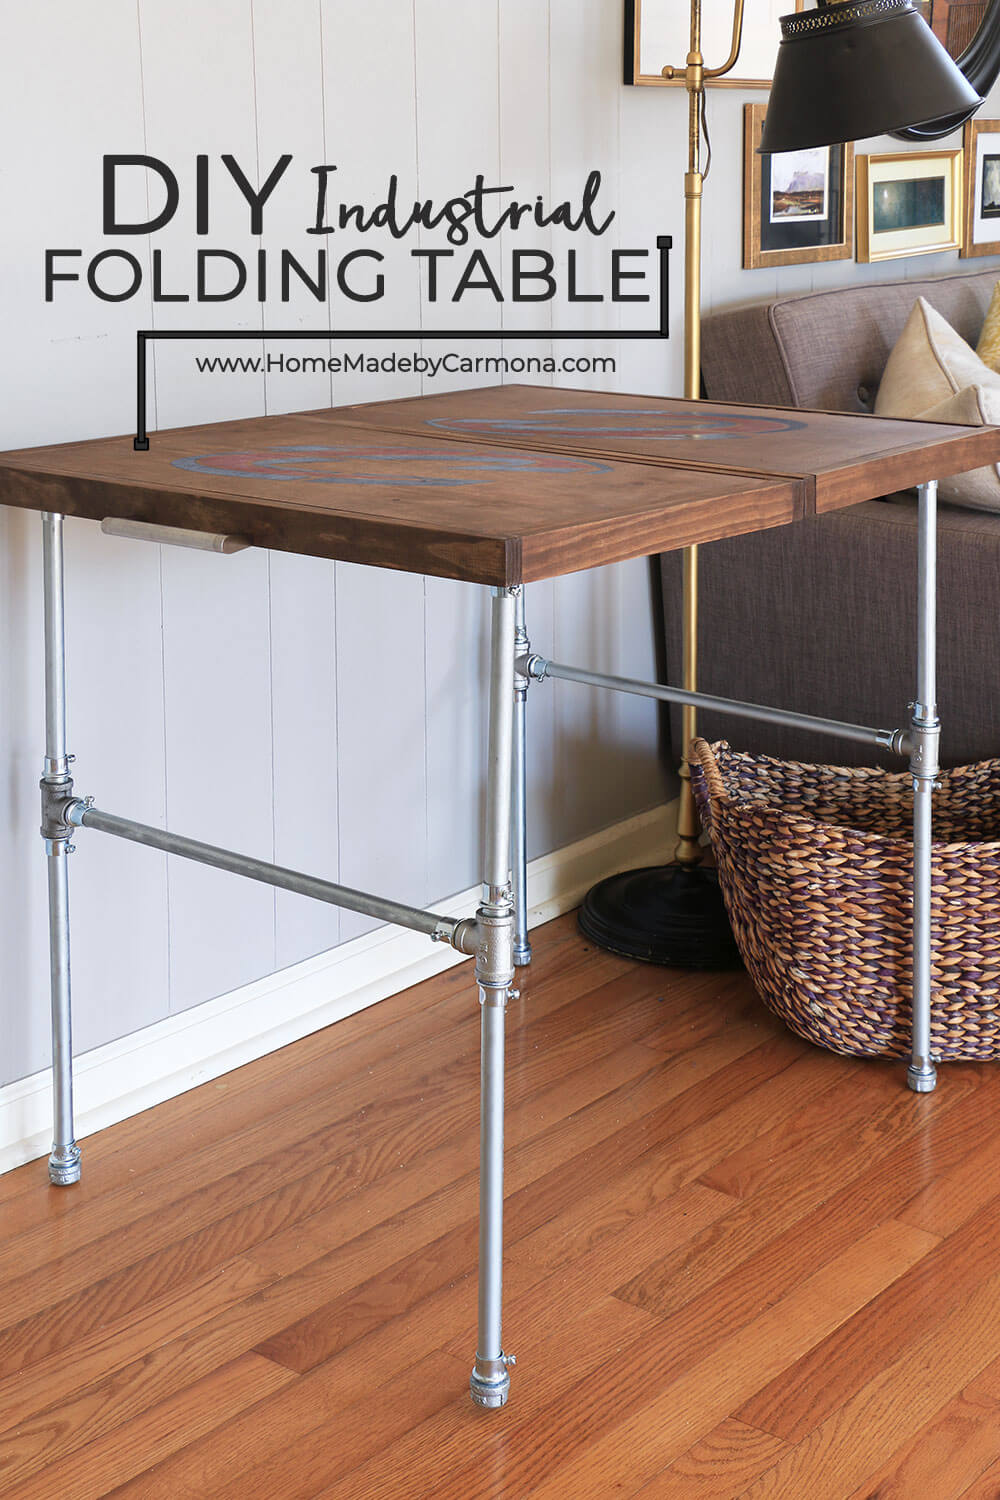 Industrial-Folding-Table-Tutorial